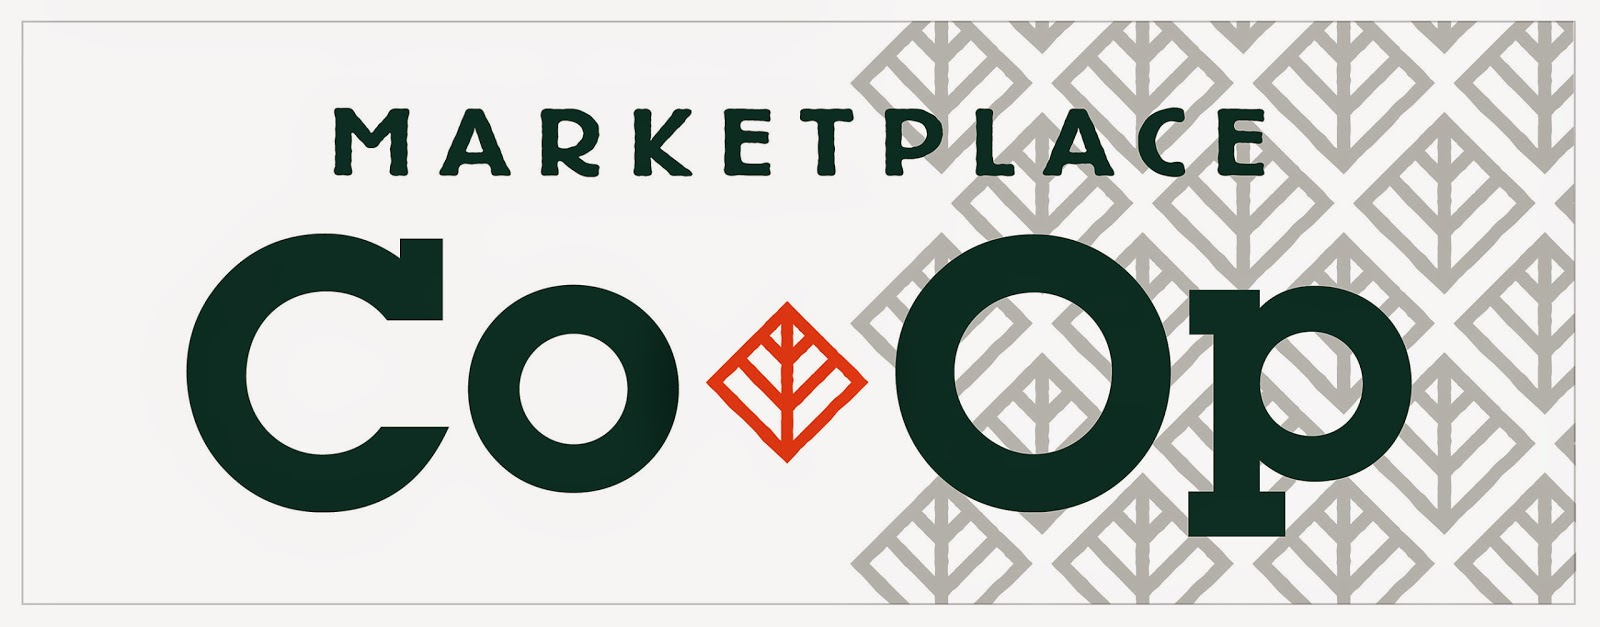 Marketplace Co-op